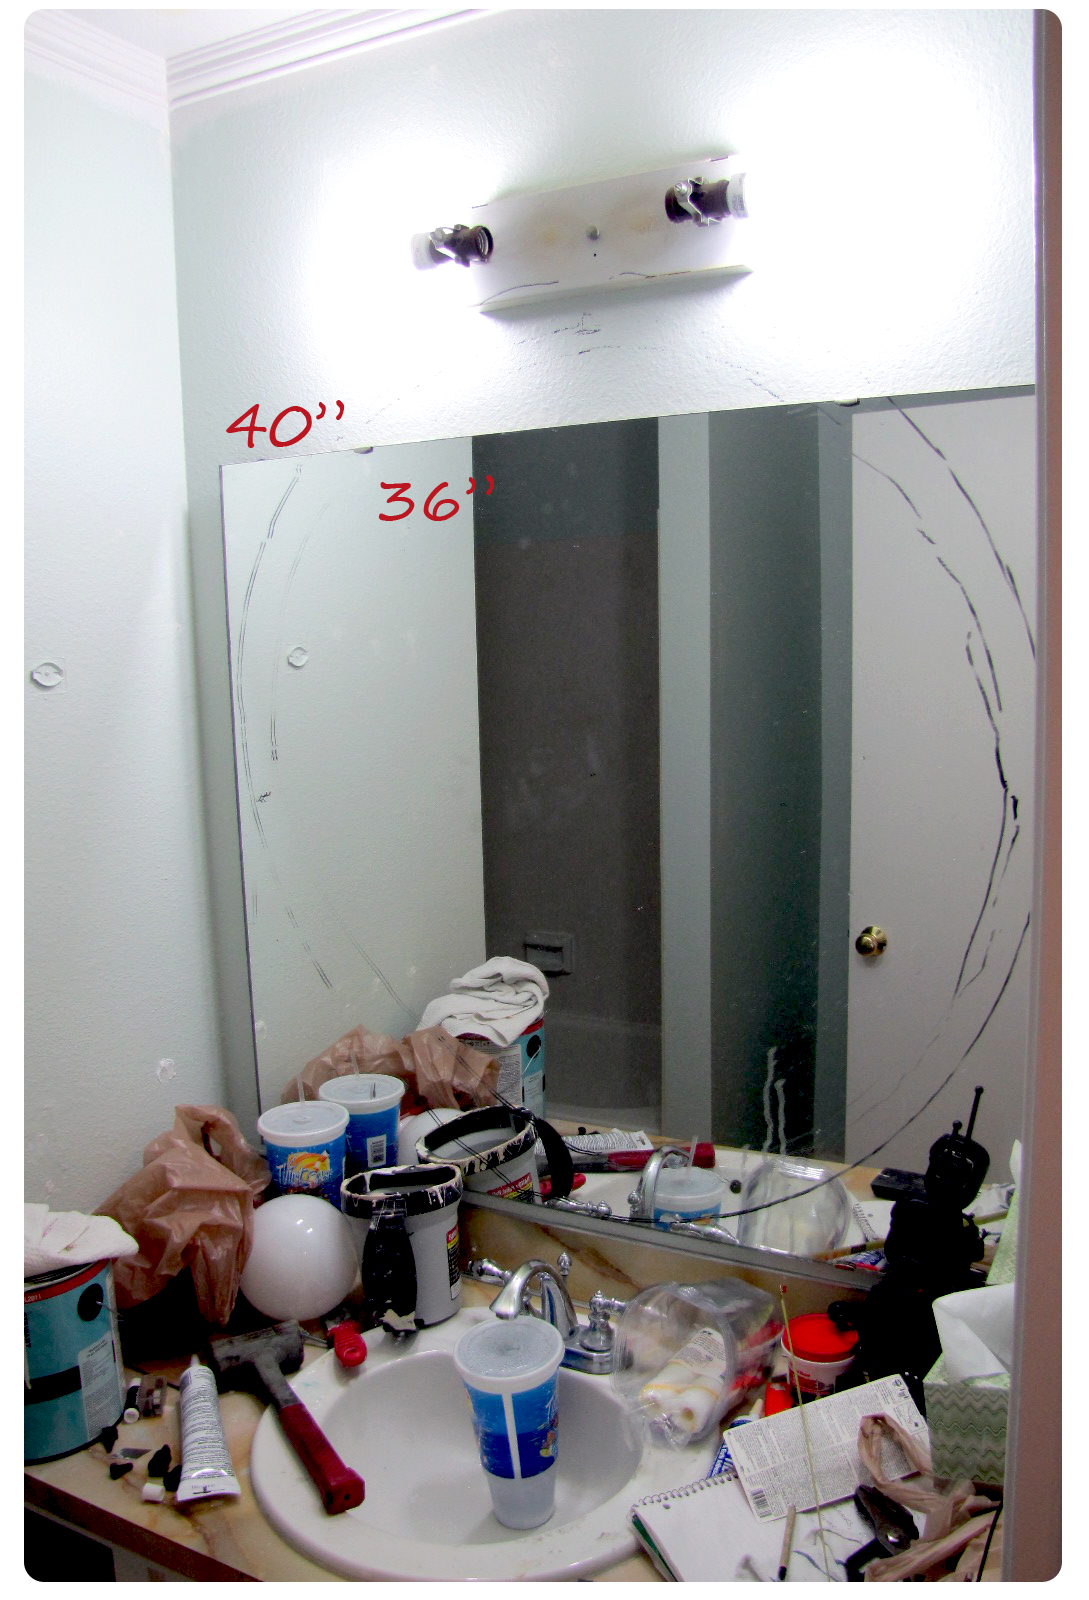 Tips on How To Decide What Size Mirror To Buy For the Bathroom